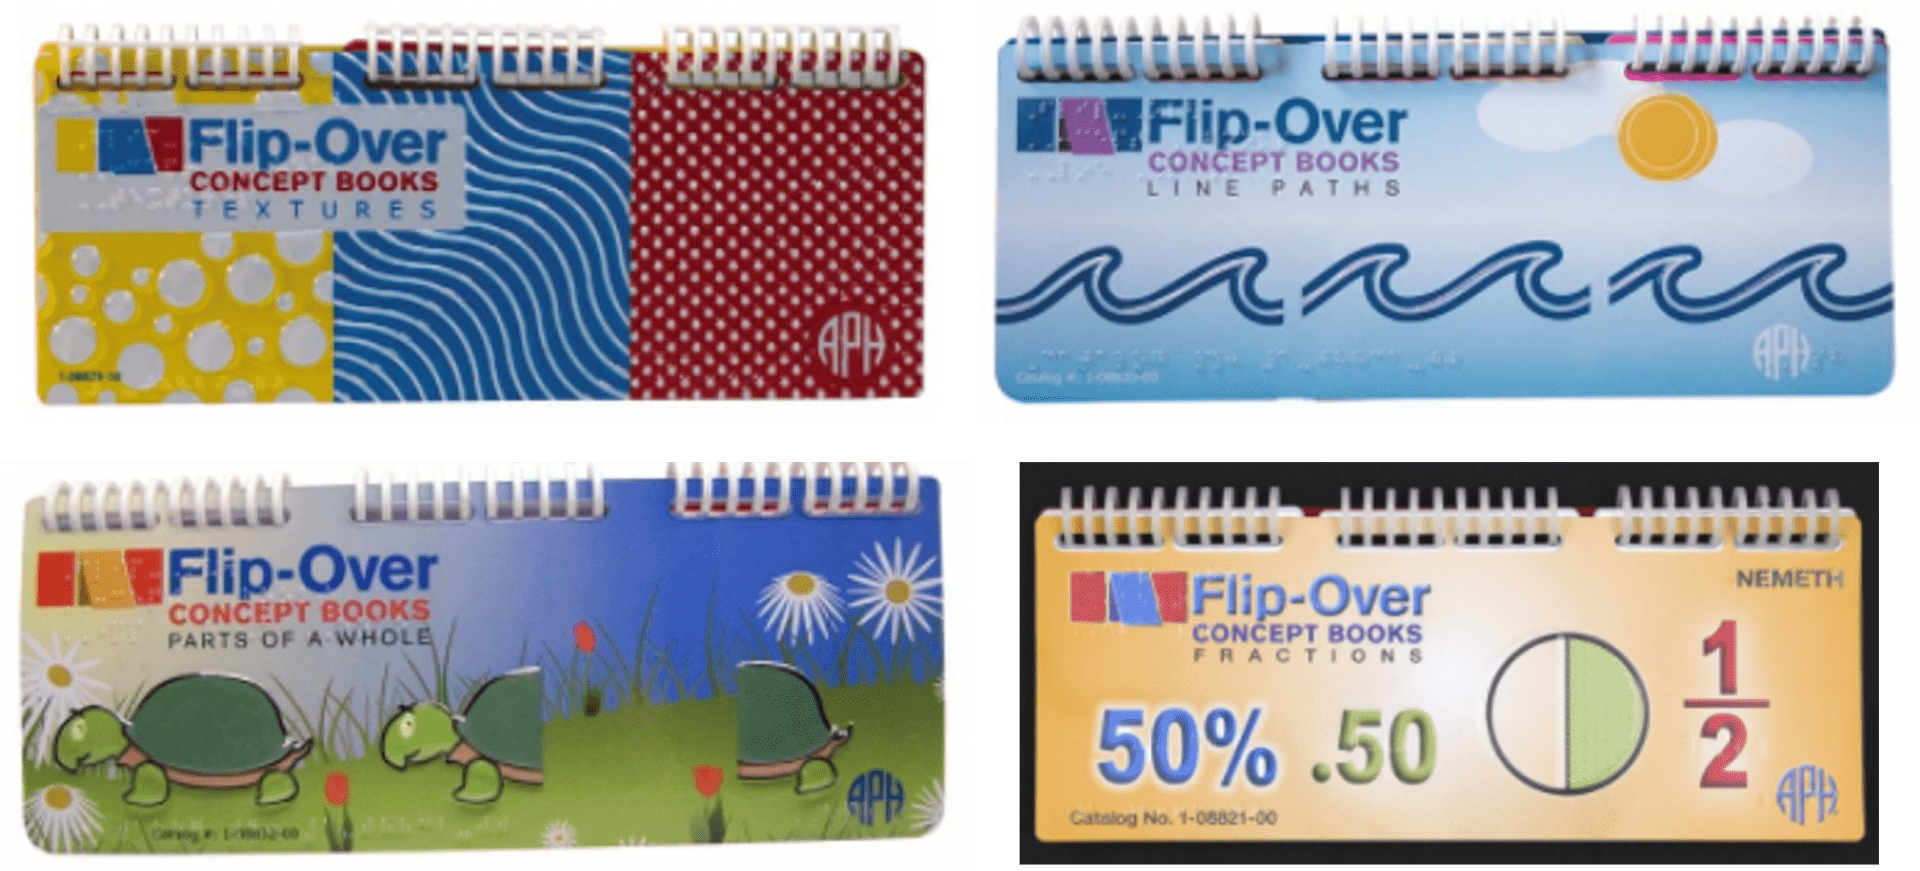 Collage of four Flip-Over Concept Books covers: Textures, Line Paths, Parts of a Whole, and Fractions